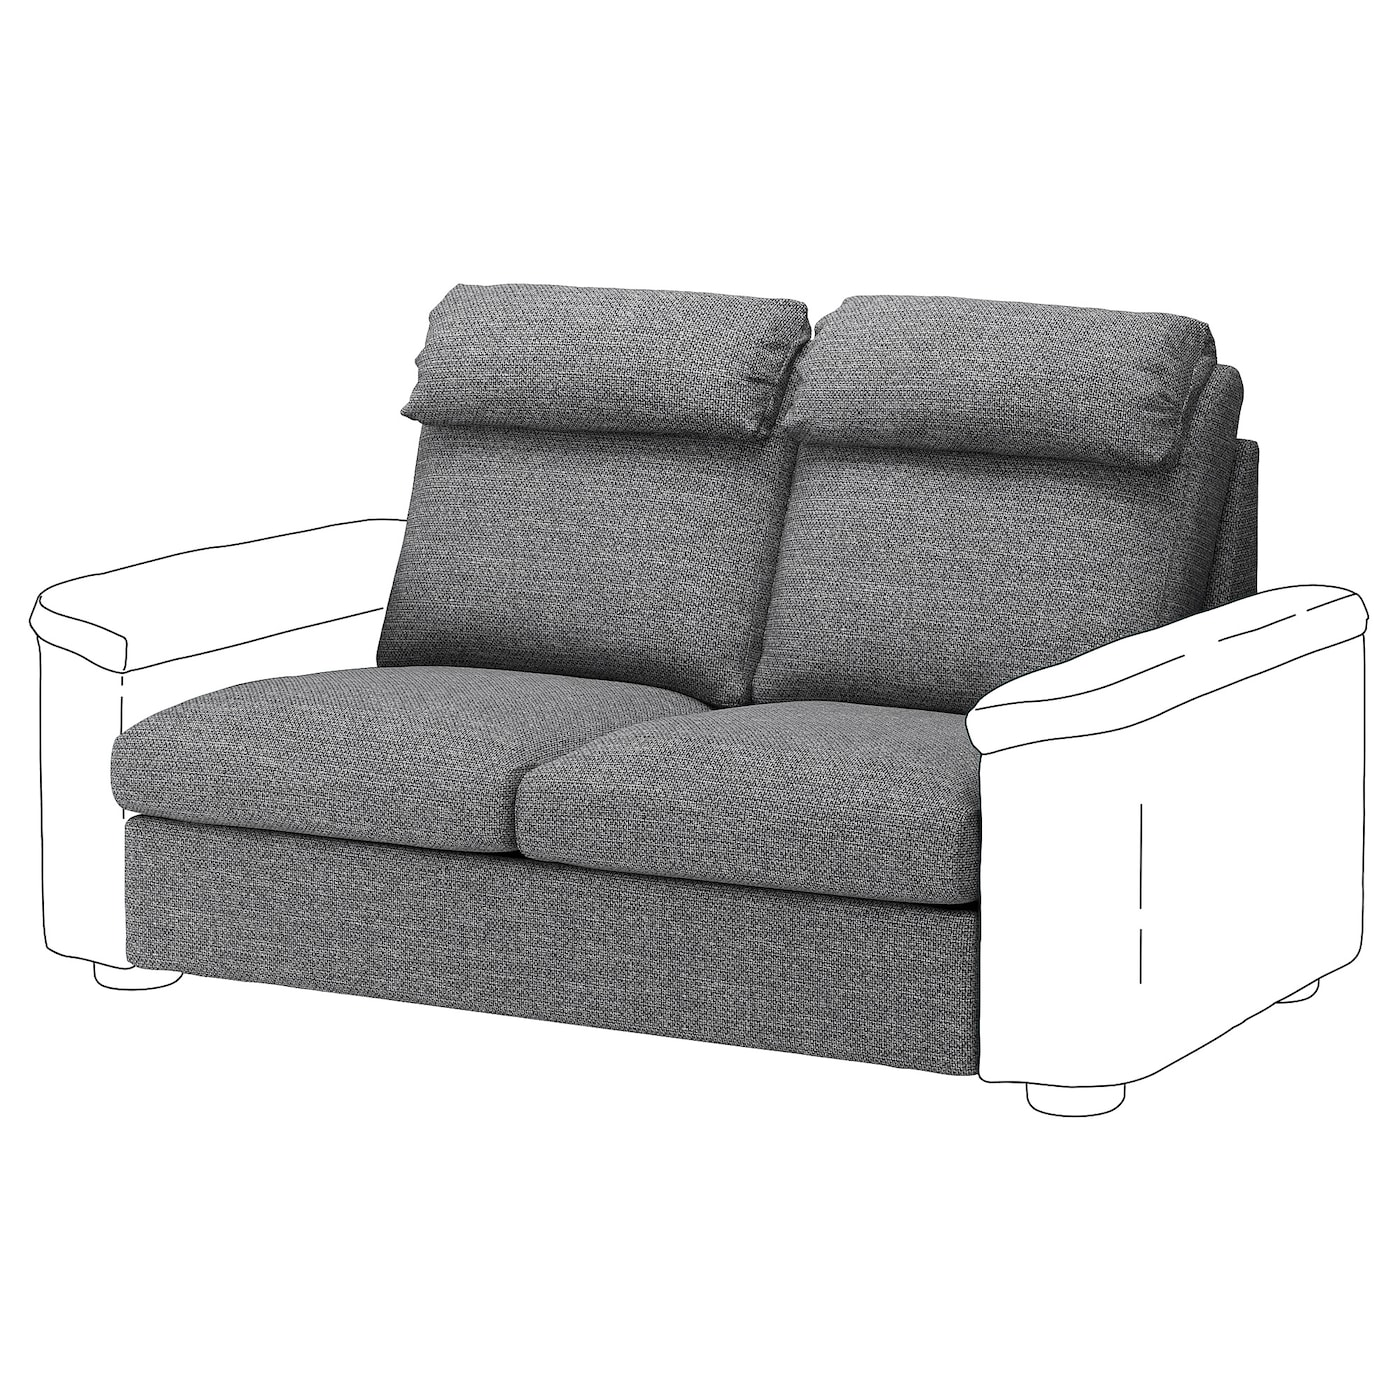 Ikea Lidhult Cover For 2 Seat Section